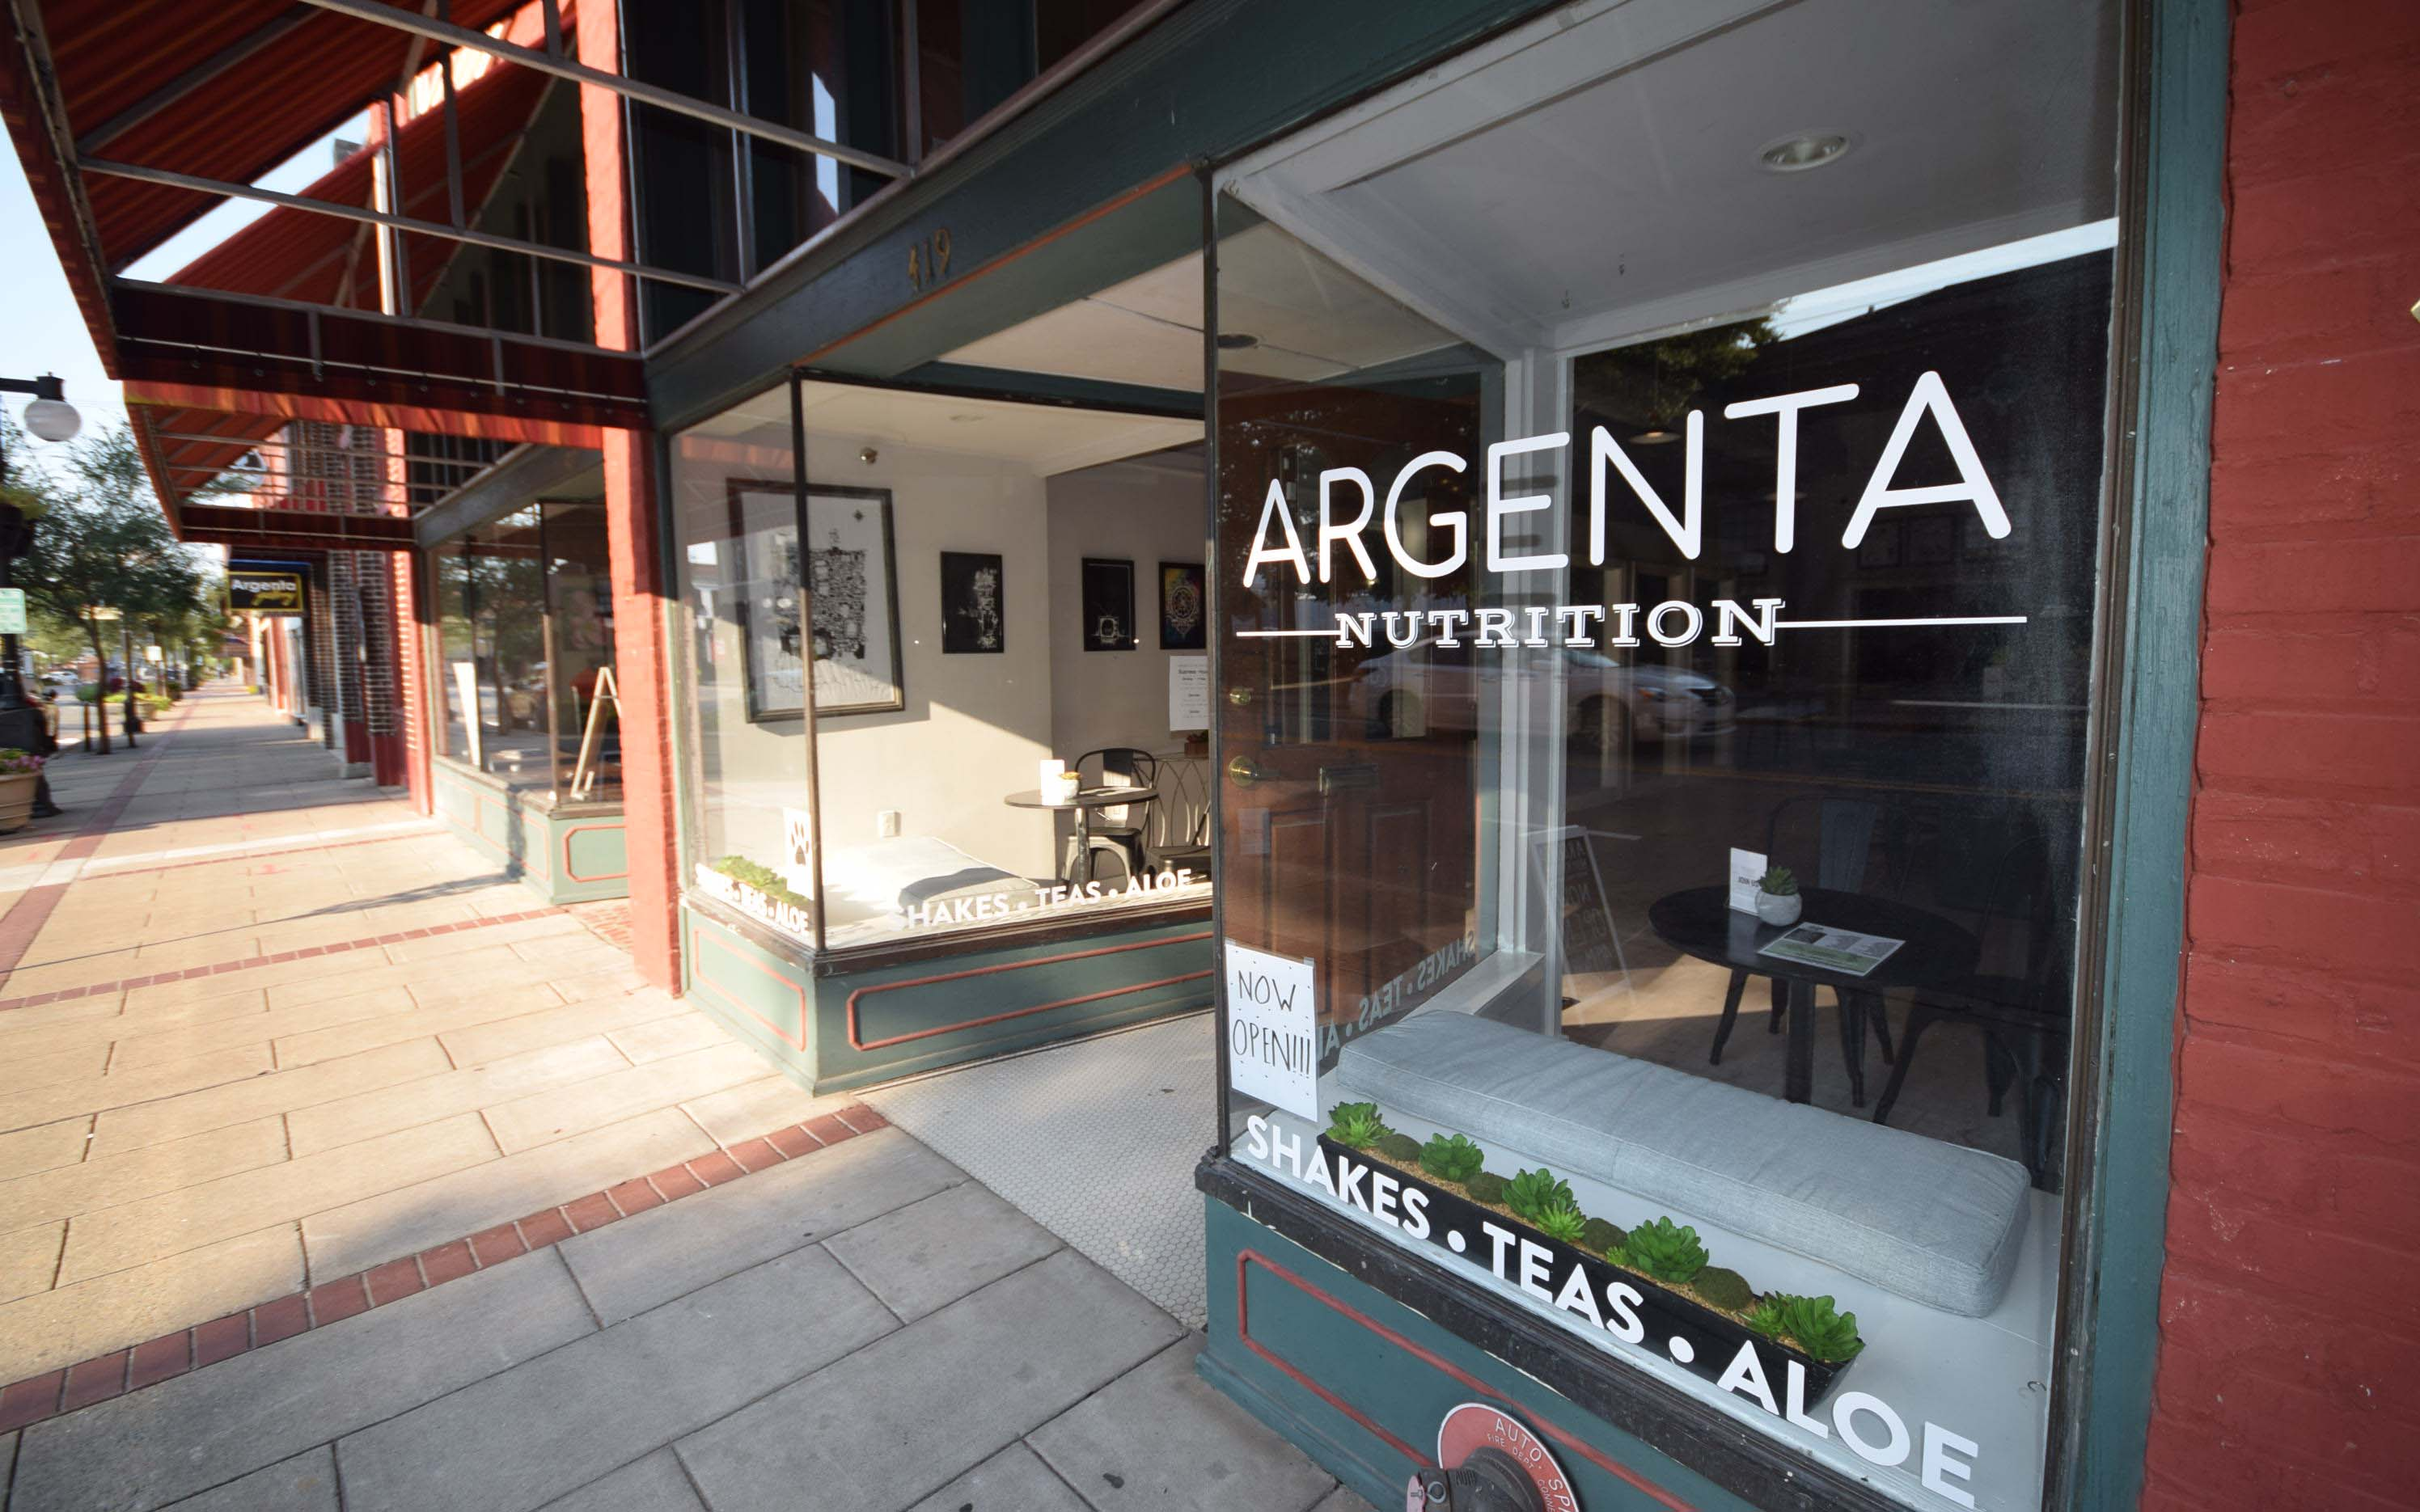 Argenta Nutrition, one of the new tenants at 419 Main Street is now open for business.